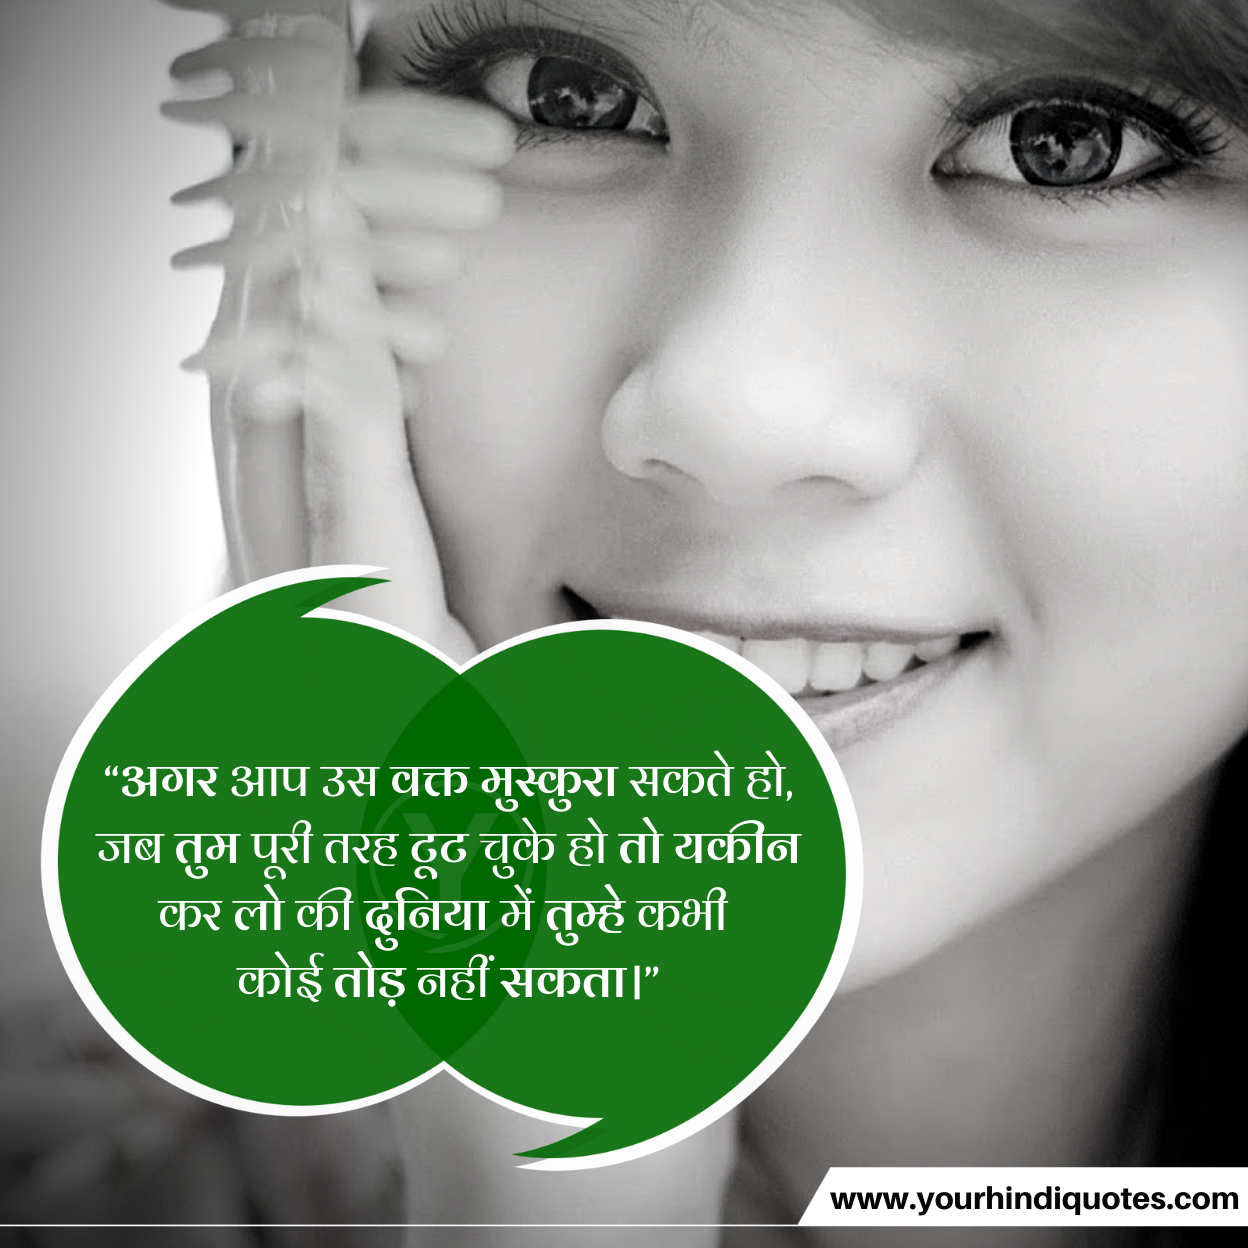 Best Hindi Life Quotes Pictures